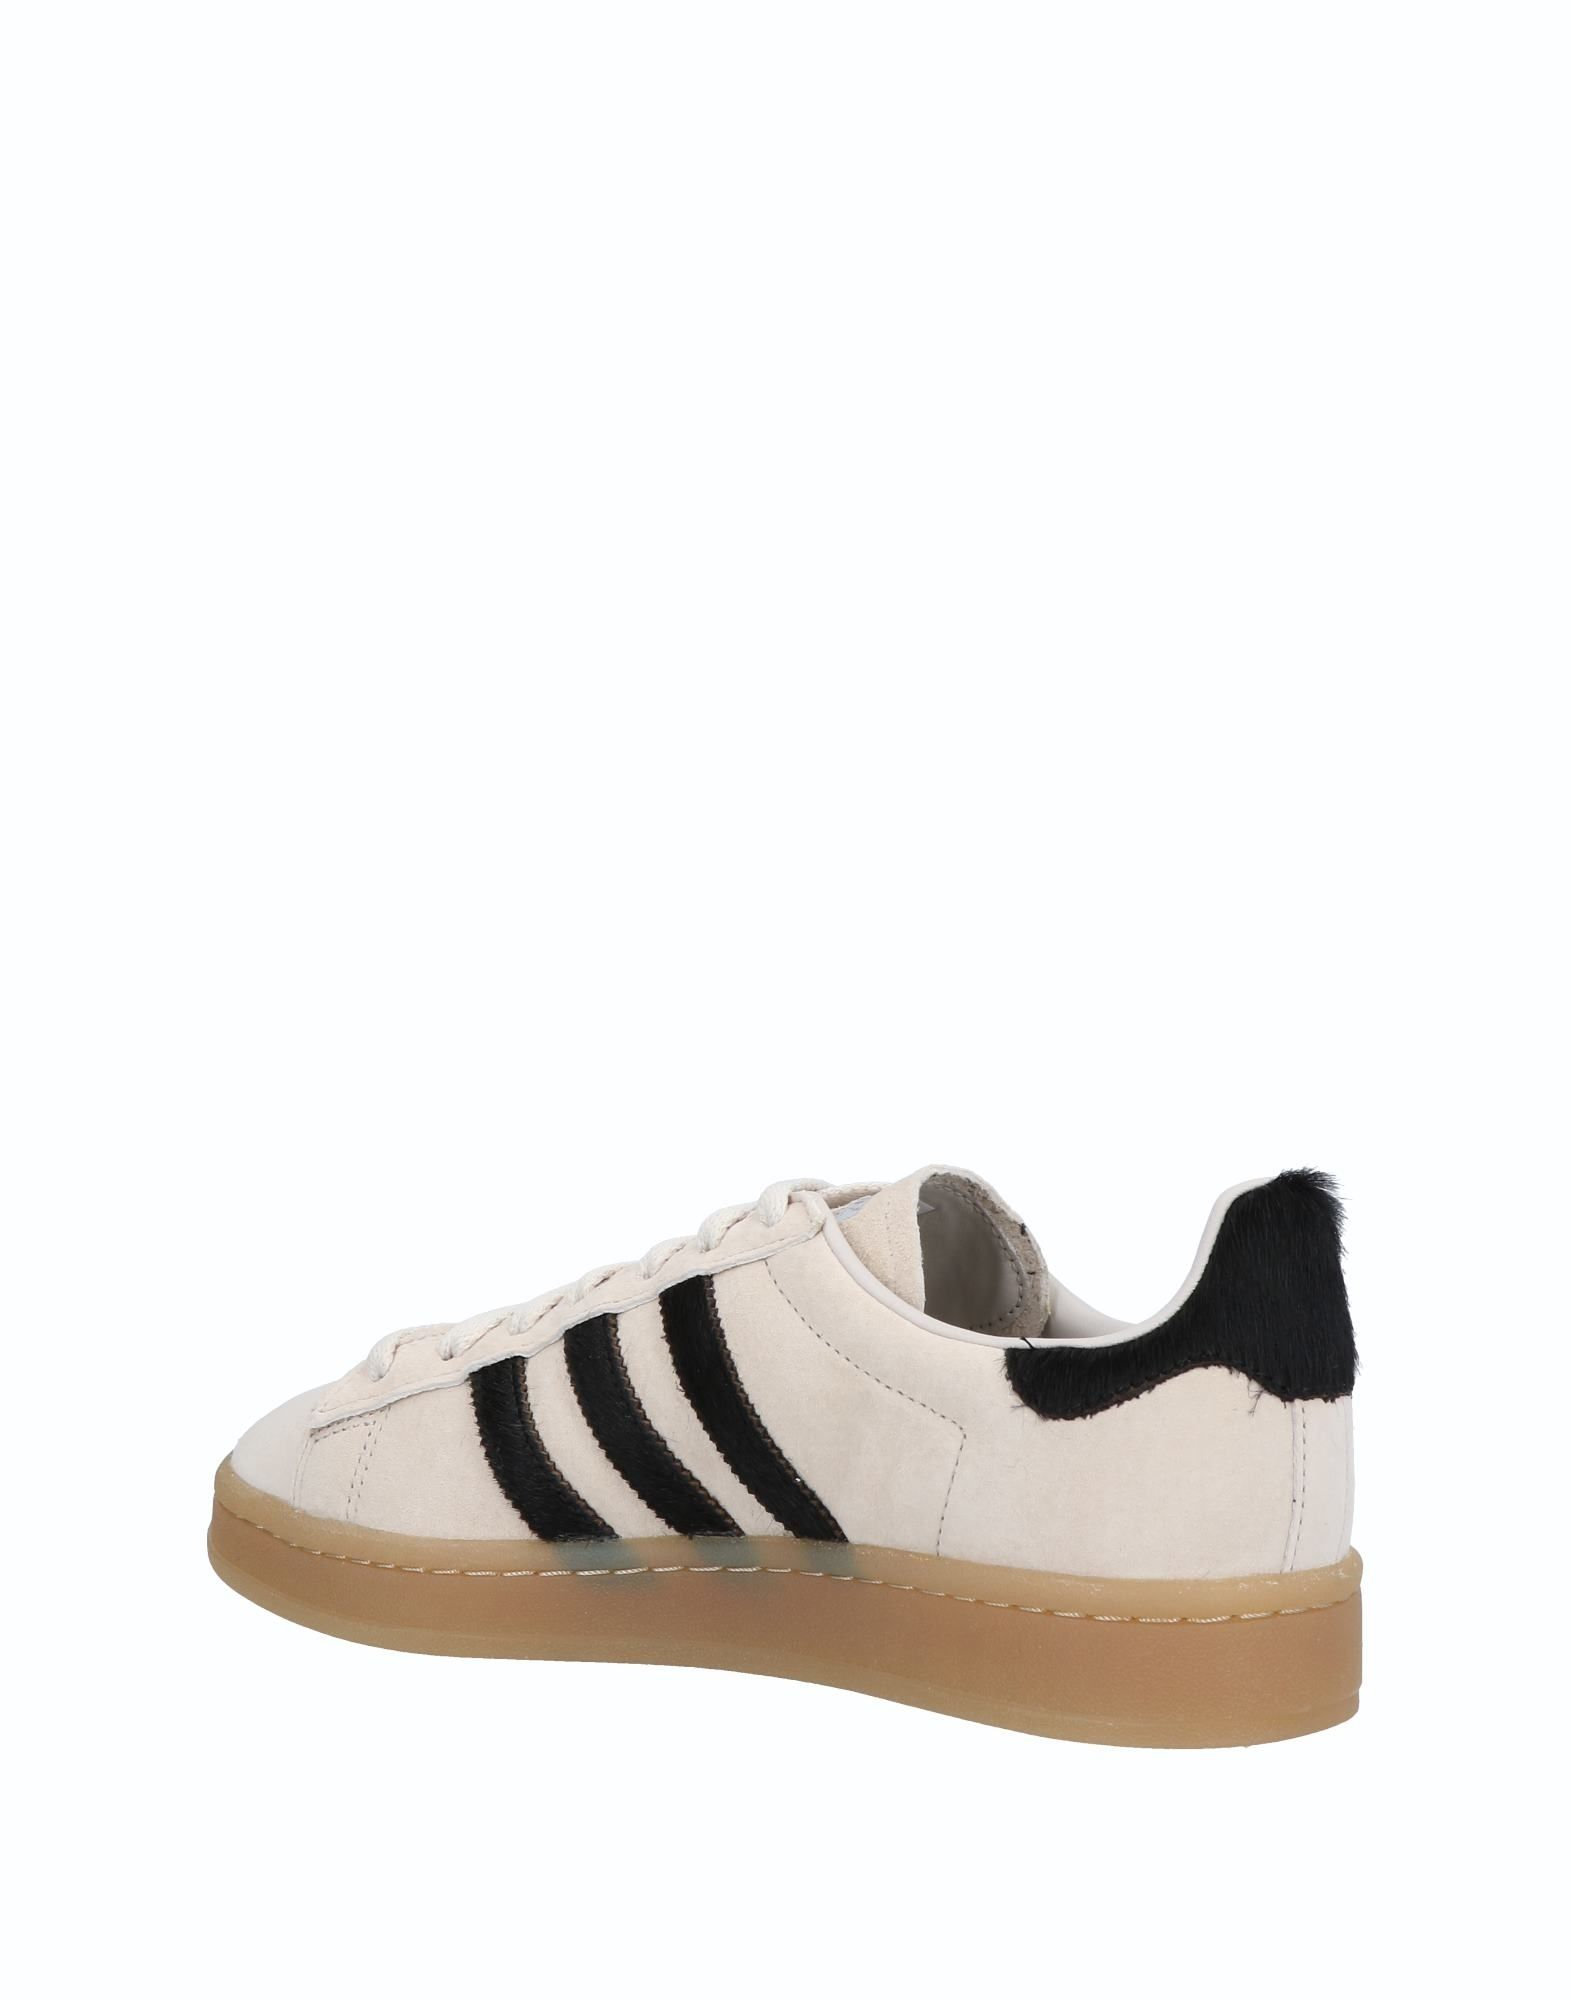 Sneakers Adidas 11465445HD Originals Uomo - 11465445HD Adidas bdb9cb